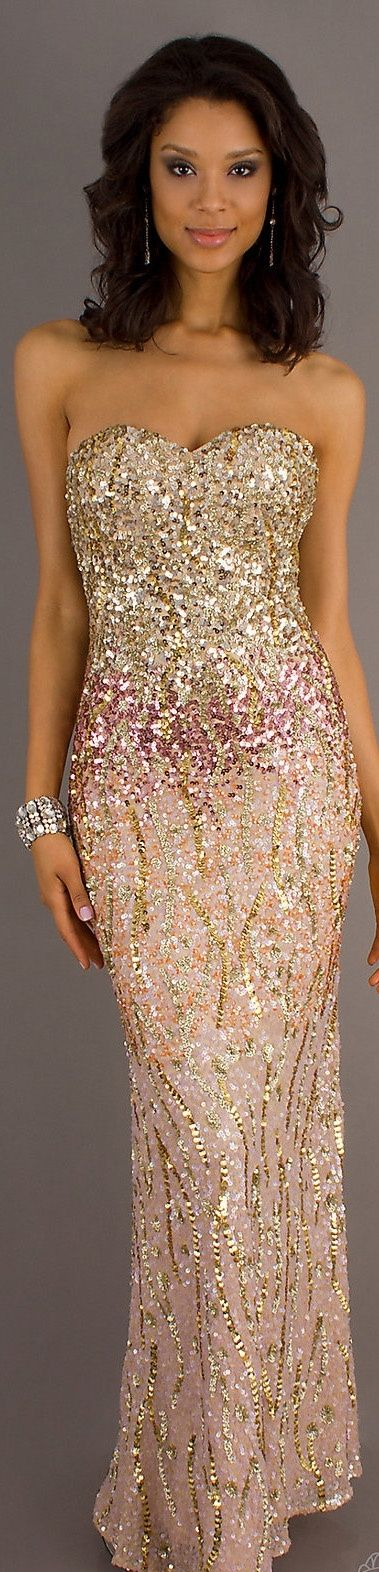 "stunning sequined gown by SCALA 2013 #Fashion ✮✮""Feel free to share on Pinterest"" ♥ღ www.HEALTHLIFE-INFO.COM"